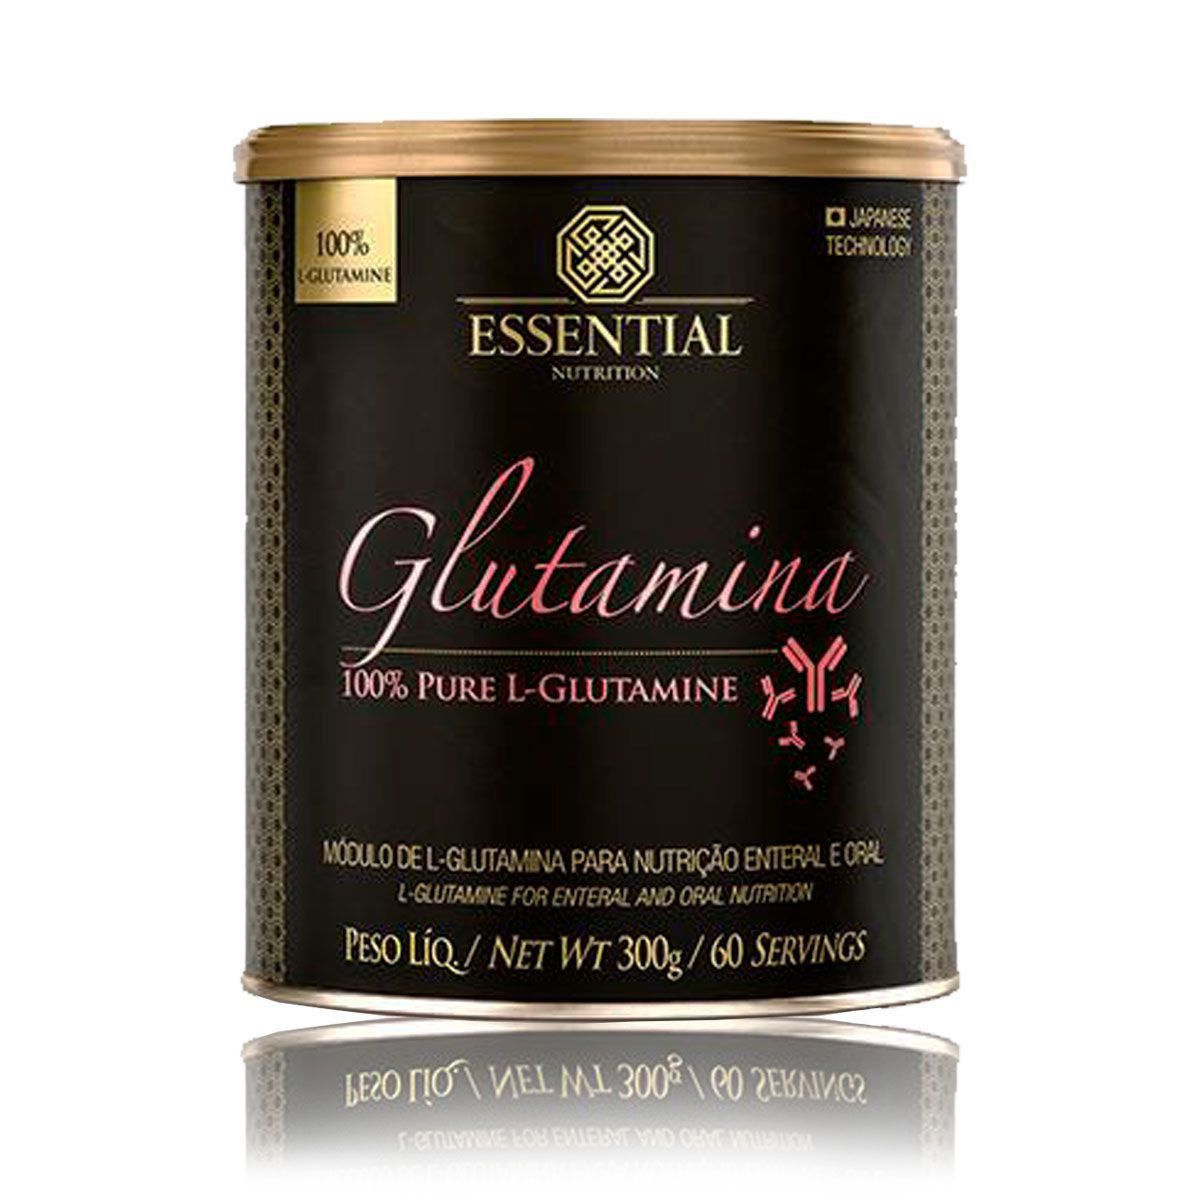 Glutamina 300g /60 doses Essential nutrition